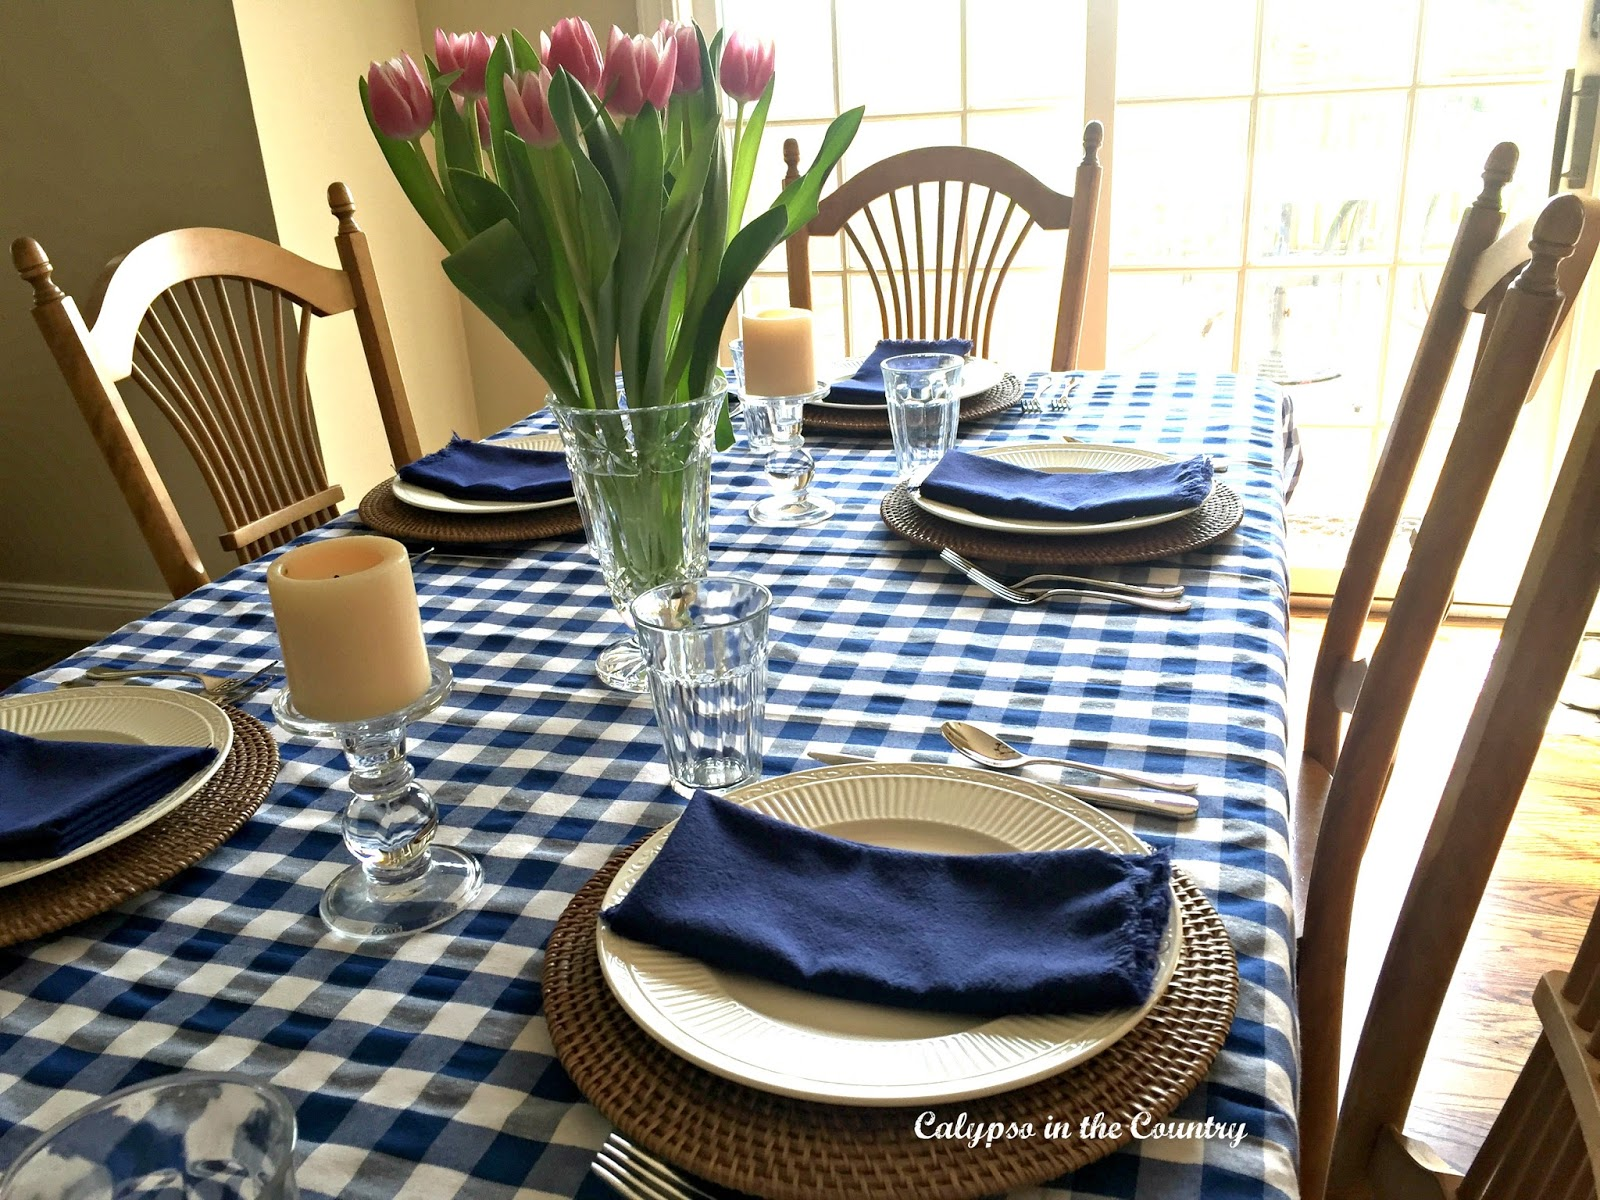 Casual Motheru0027s Day Table Setting with blue and white checks : blue and white table settings - pezcame.com